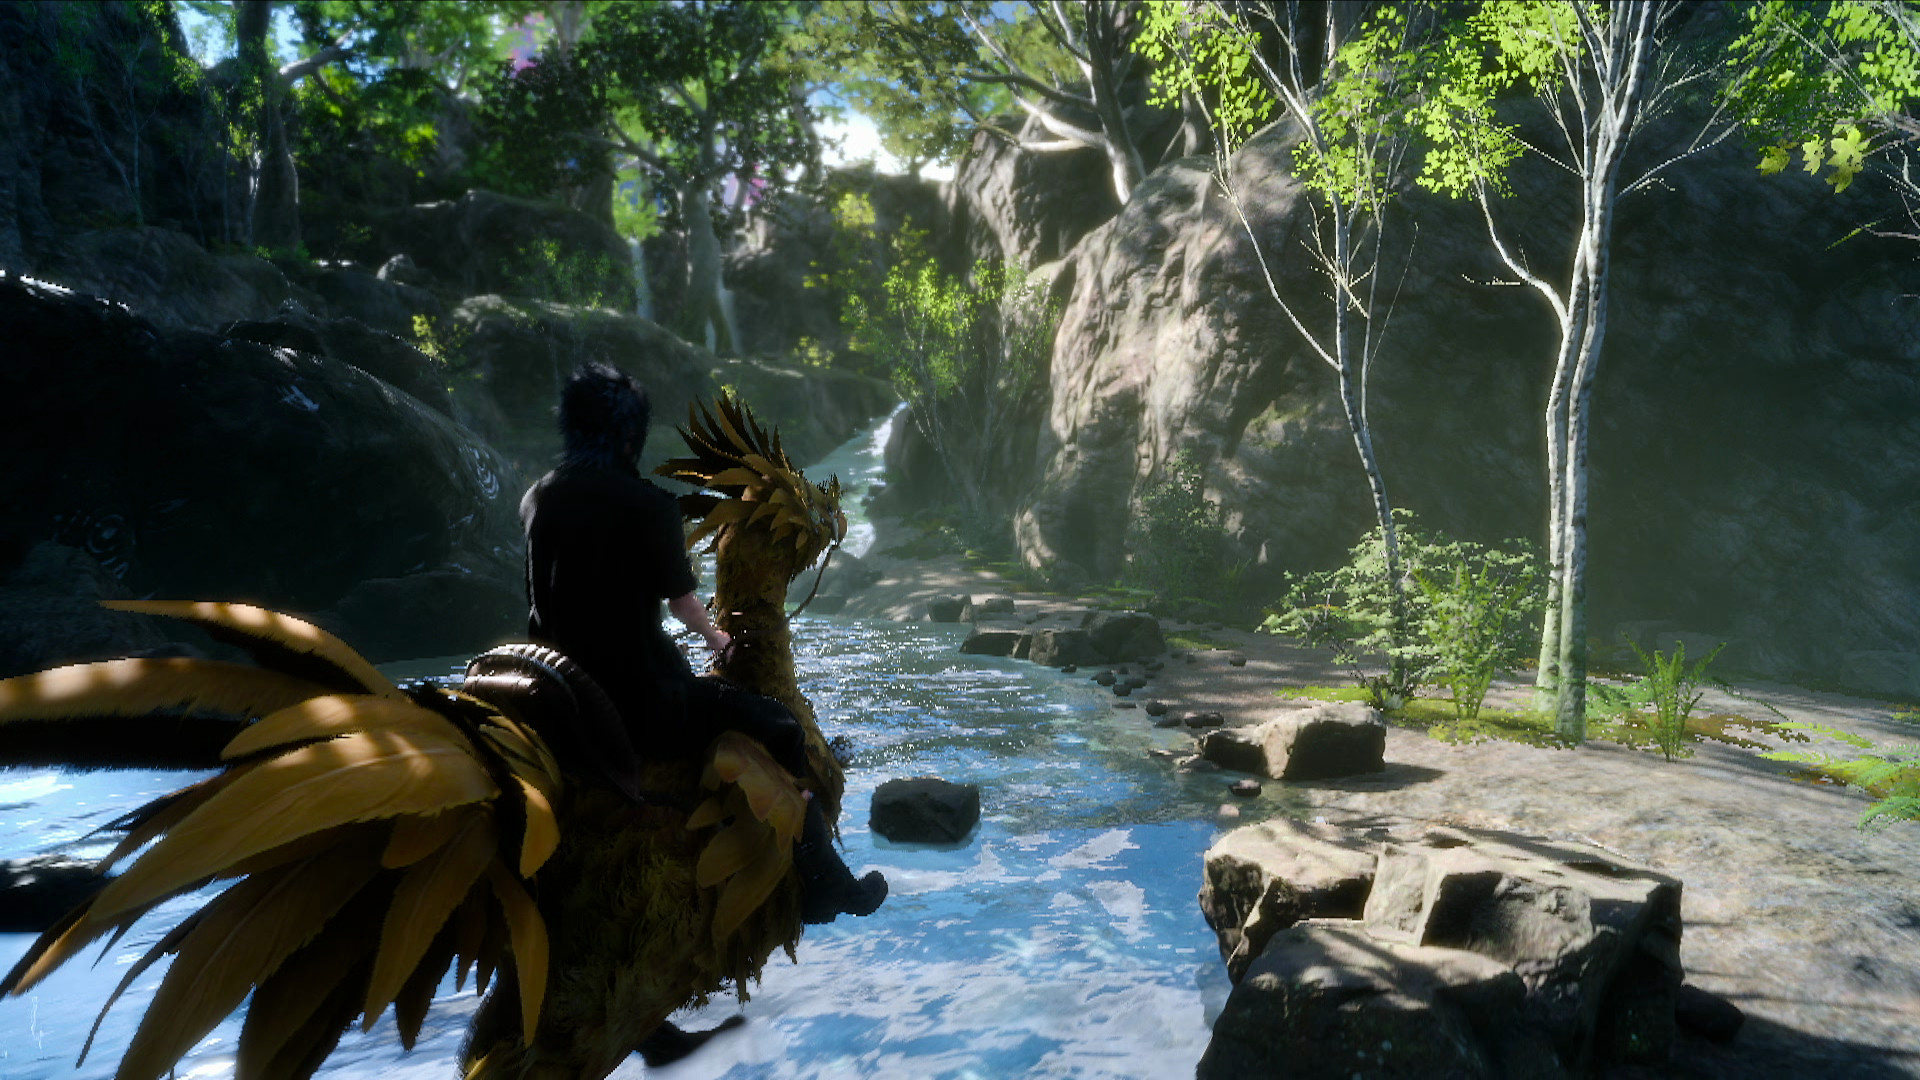 Res: 1920x1080, Final Fantasy XV trailer features 2 minutes of glorious Chocobo riding  action